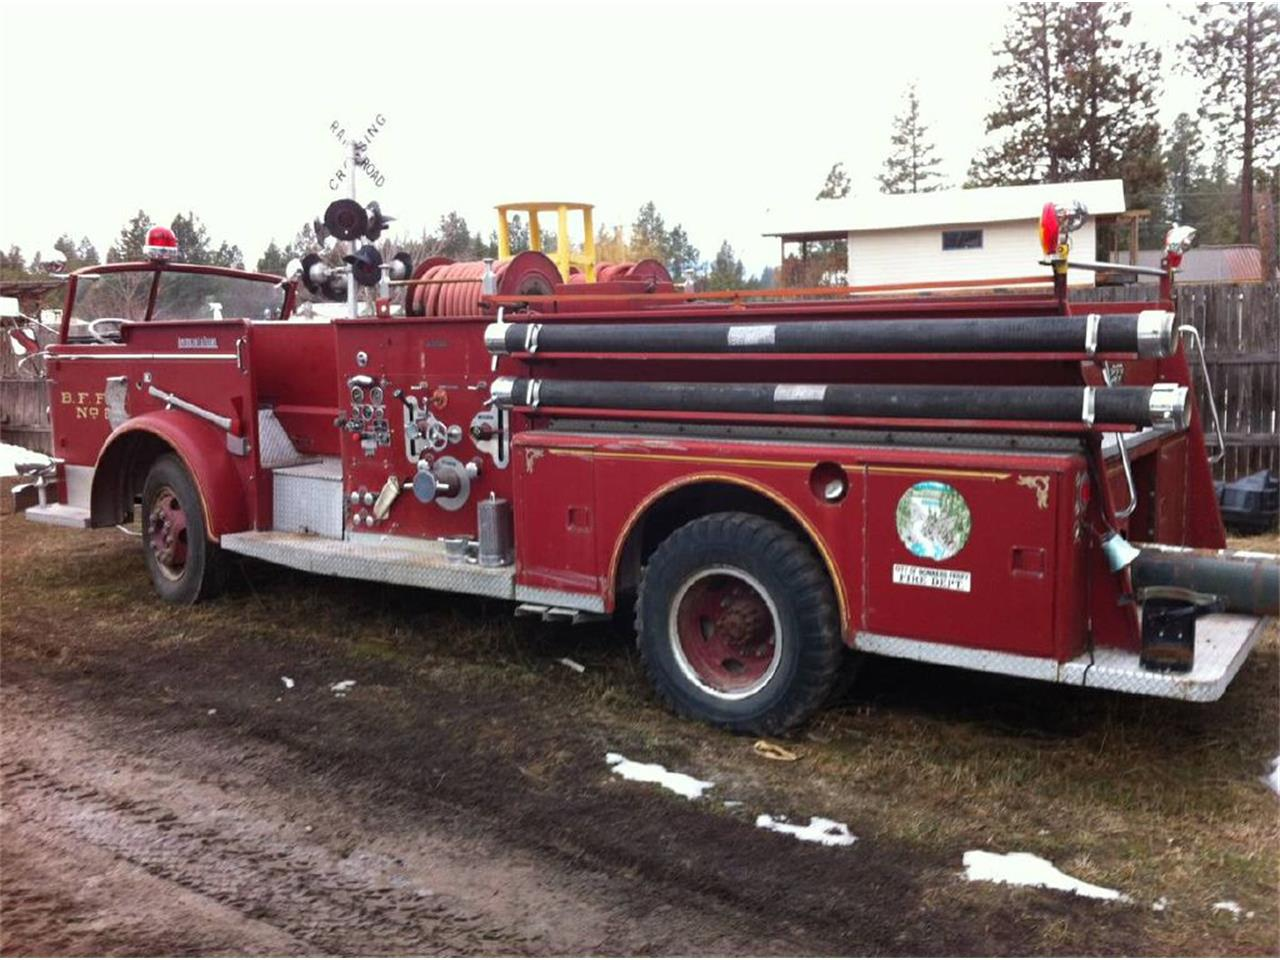 1954 American LaFrance Fire Engine (CC-1085353) for sale in West Pittston, Pennsylvania